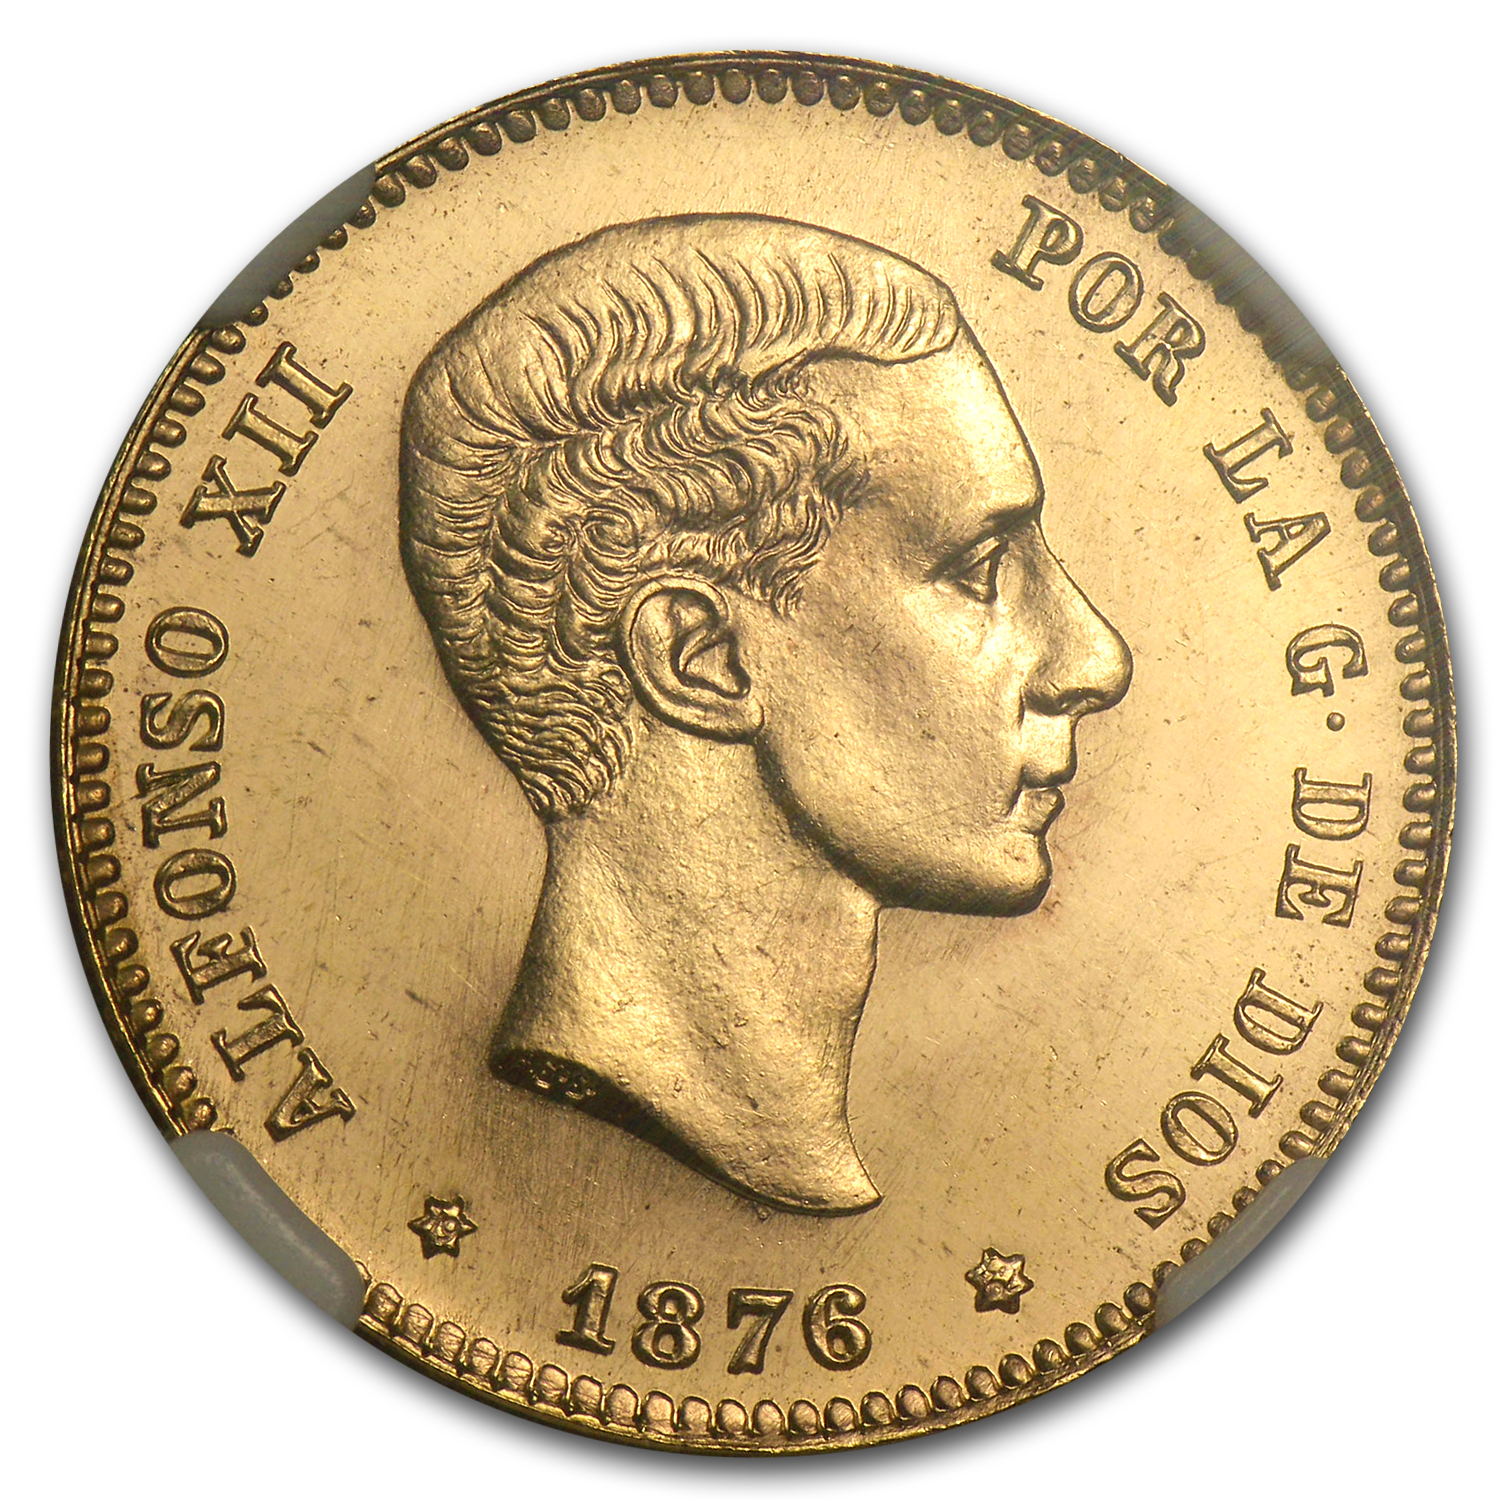 1876 Dem Spain Gold 25 Pesetas MS-66 NGC